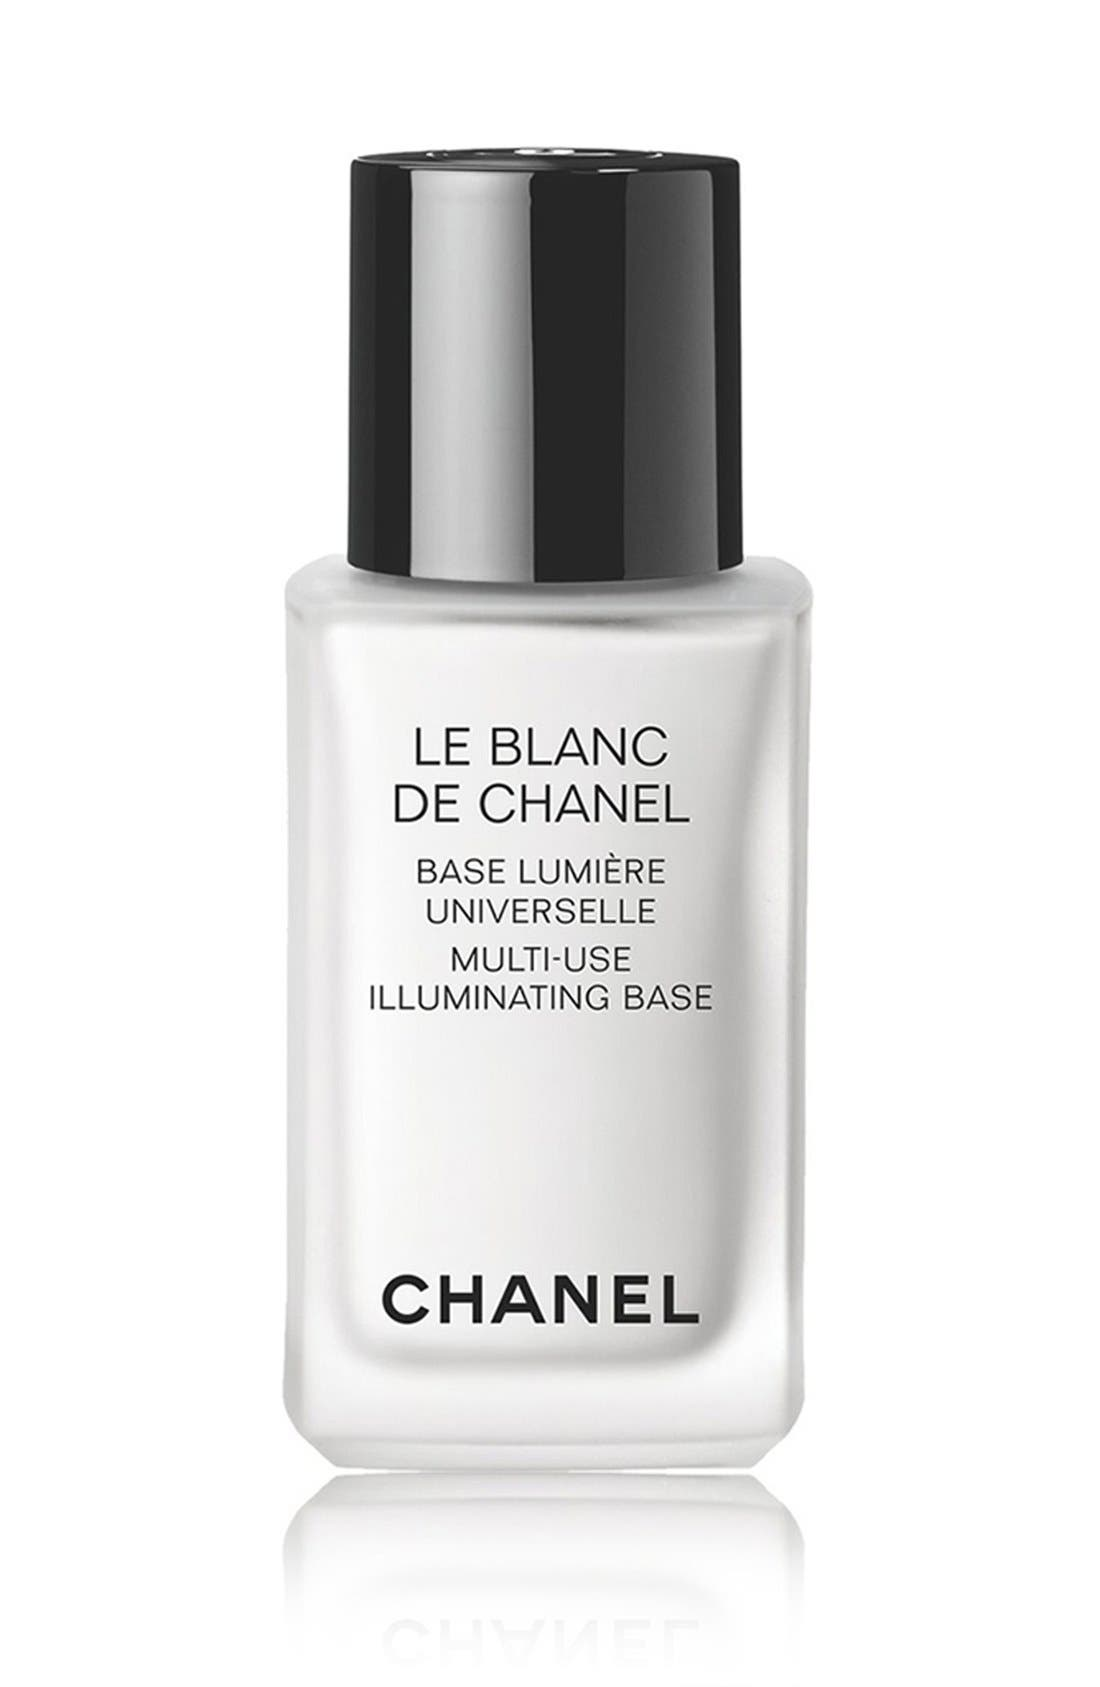 CHANEL LE BLANC DE CHANEL 